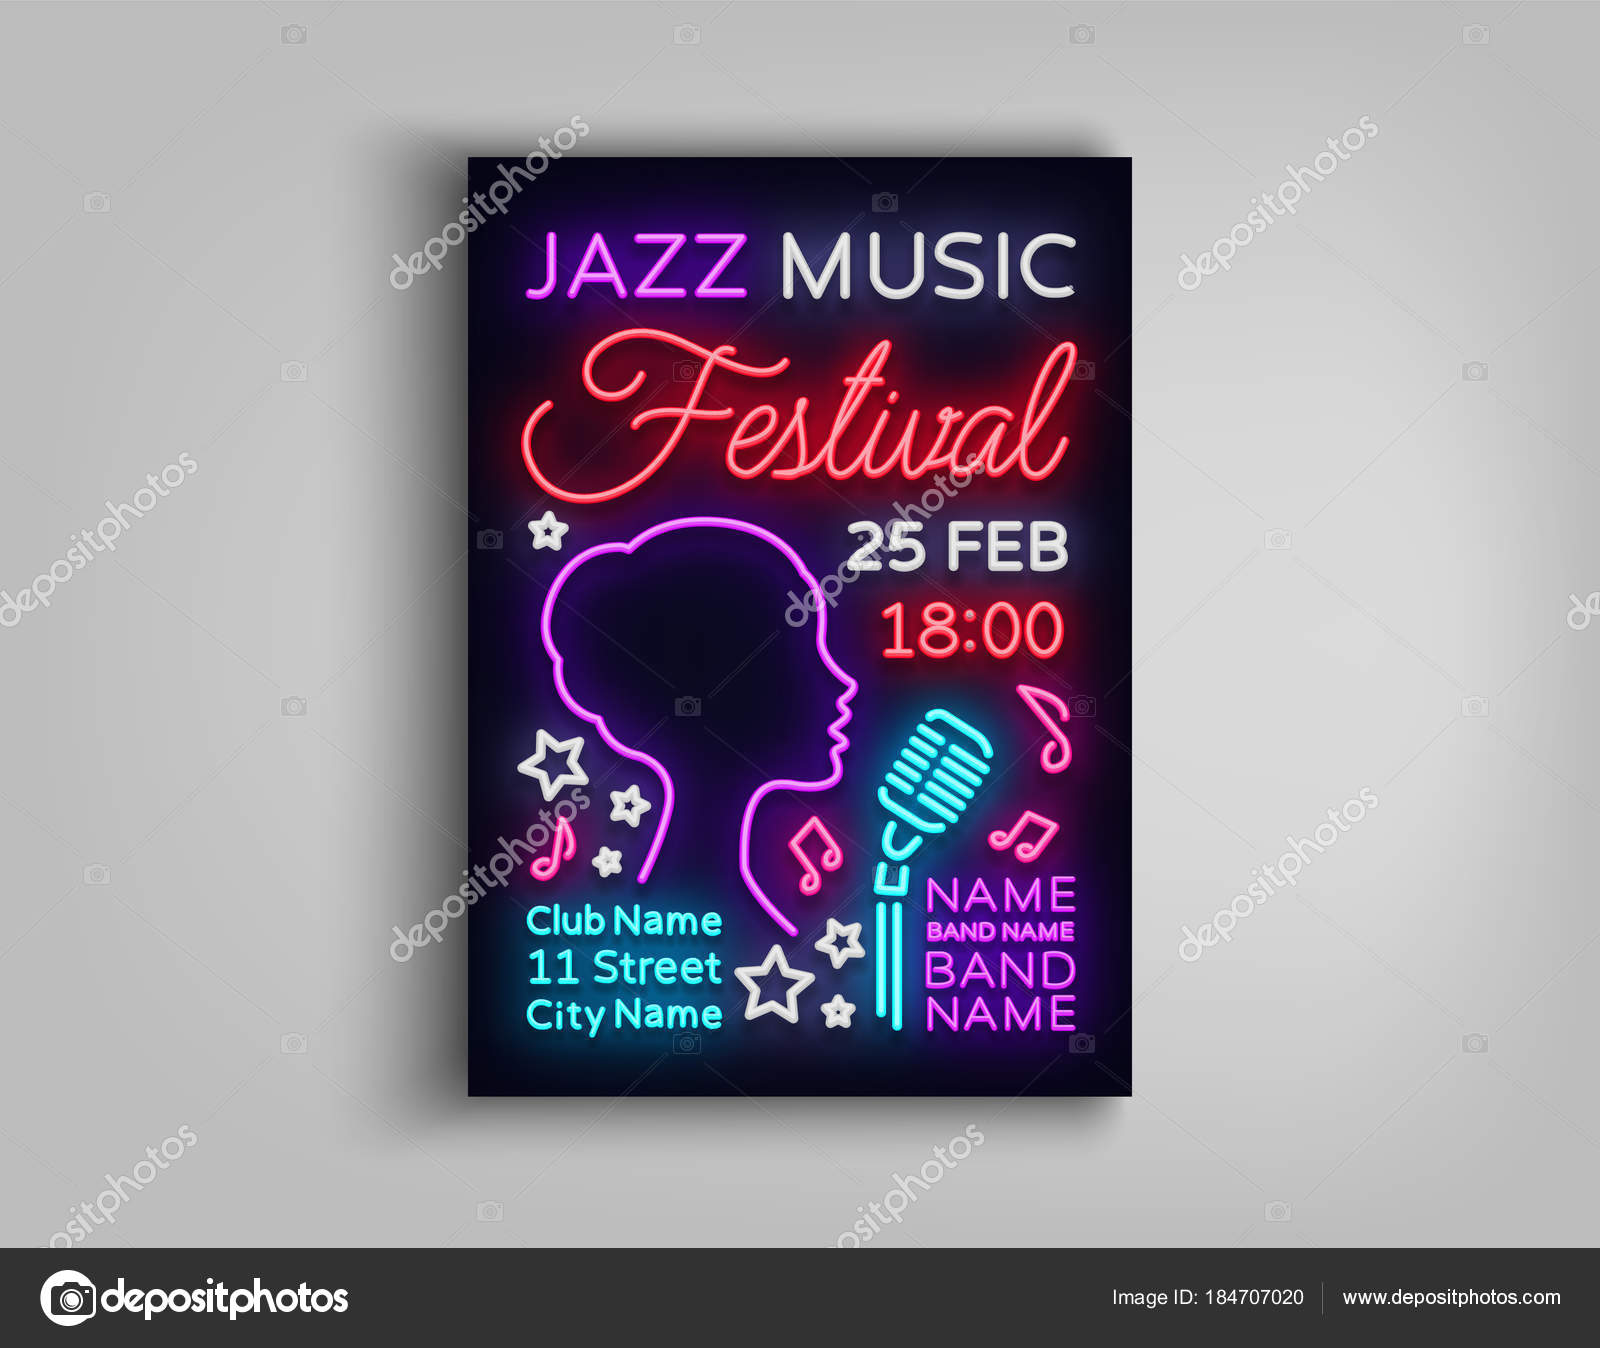 Jazz festival poster neon neon sign neon style brochure design jazz festival poster neon neon sign neon style brochure design invitation template for jazz music festival light banner nightly advertisement of the stopboris Images